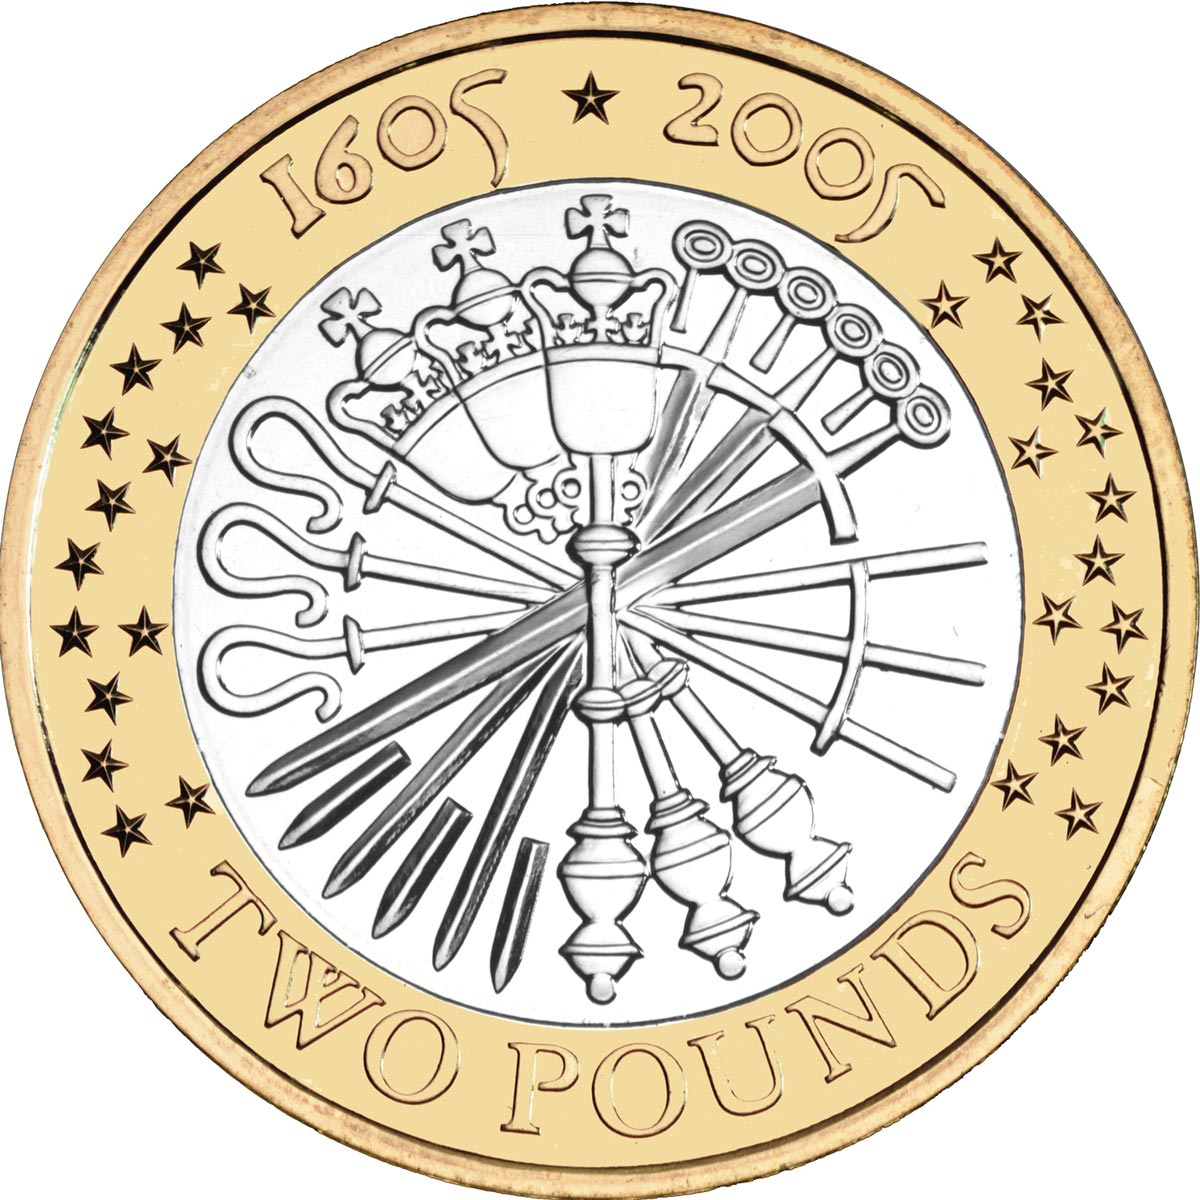 2 pound coin clipart png free library 2 pounds coin - 400th anniversary of the Gunpowder Plot | United ... png free library